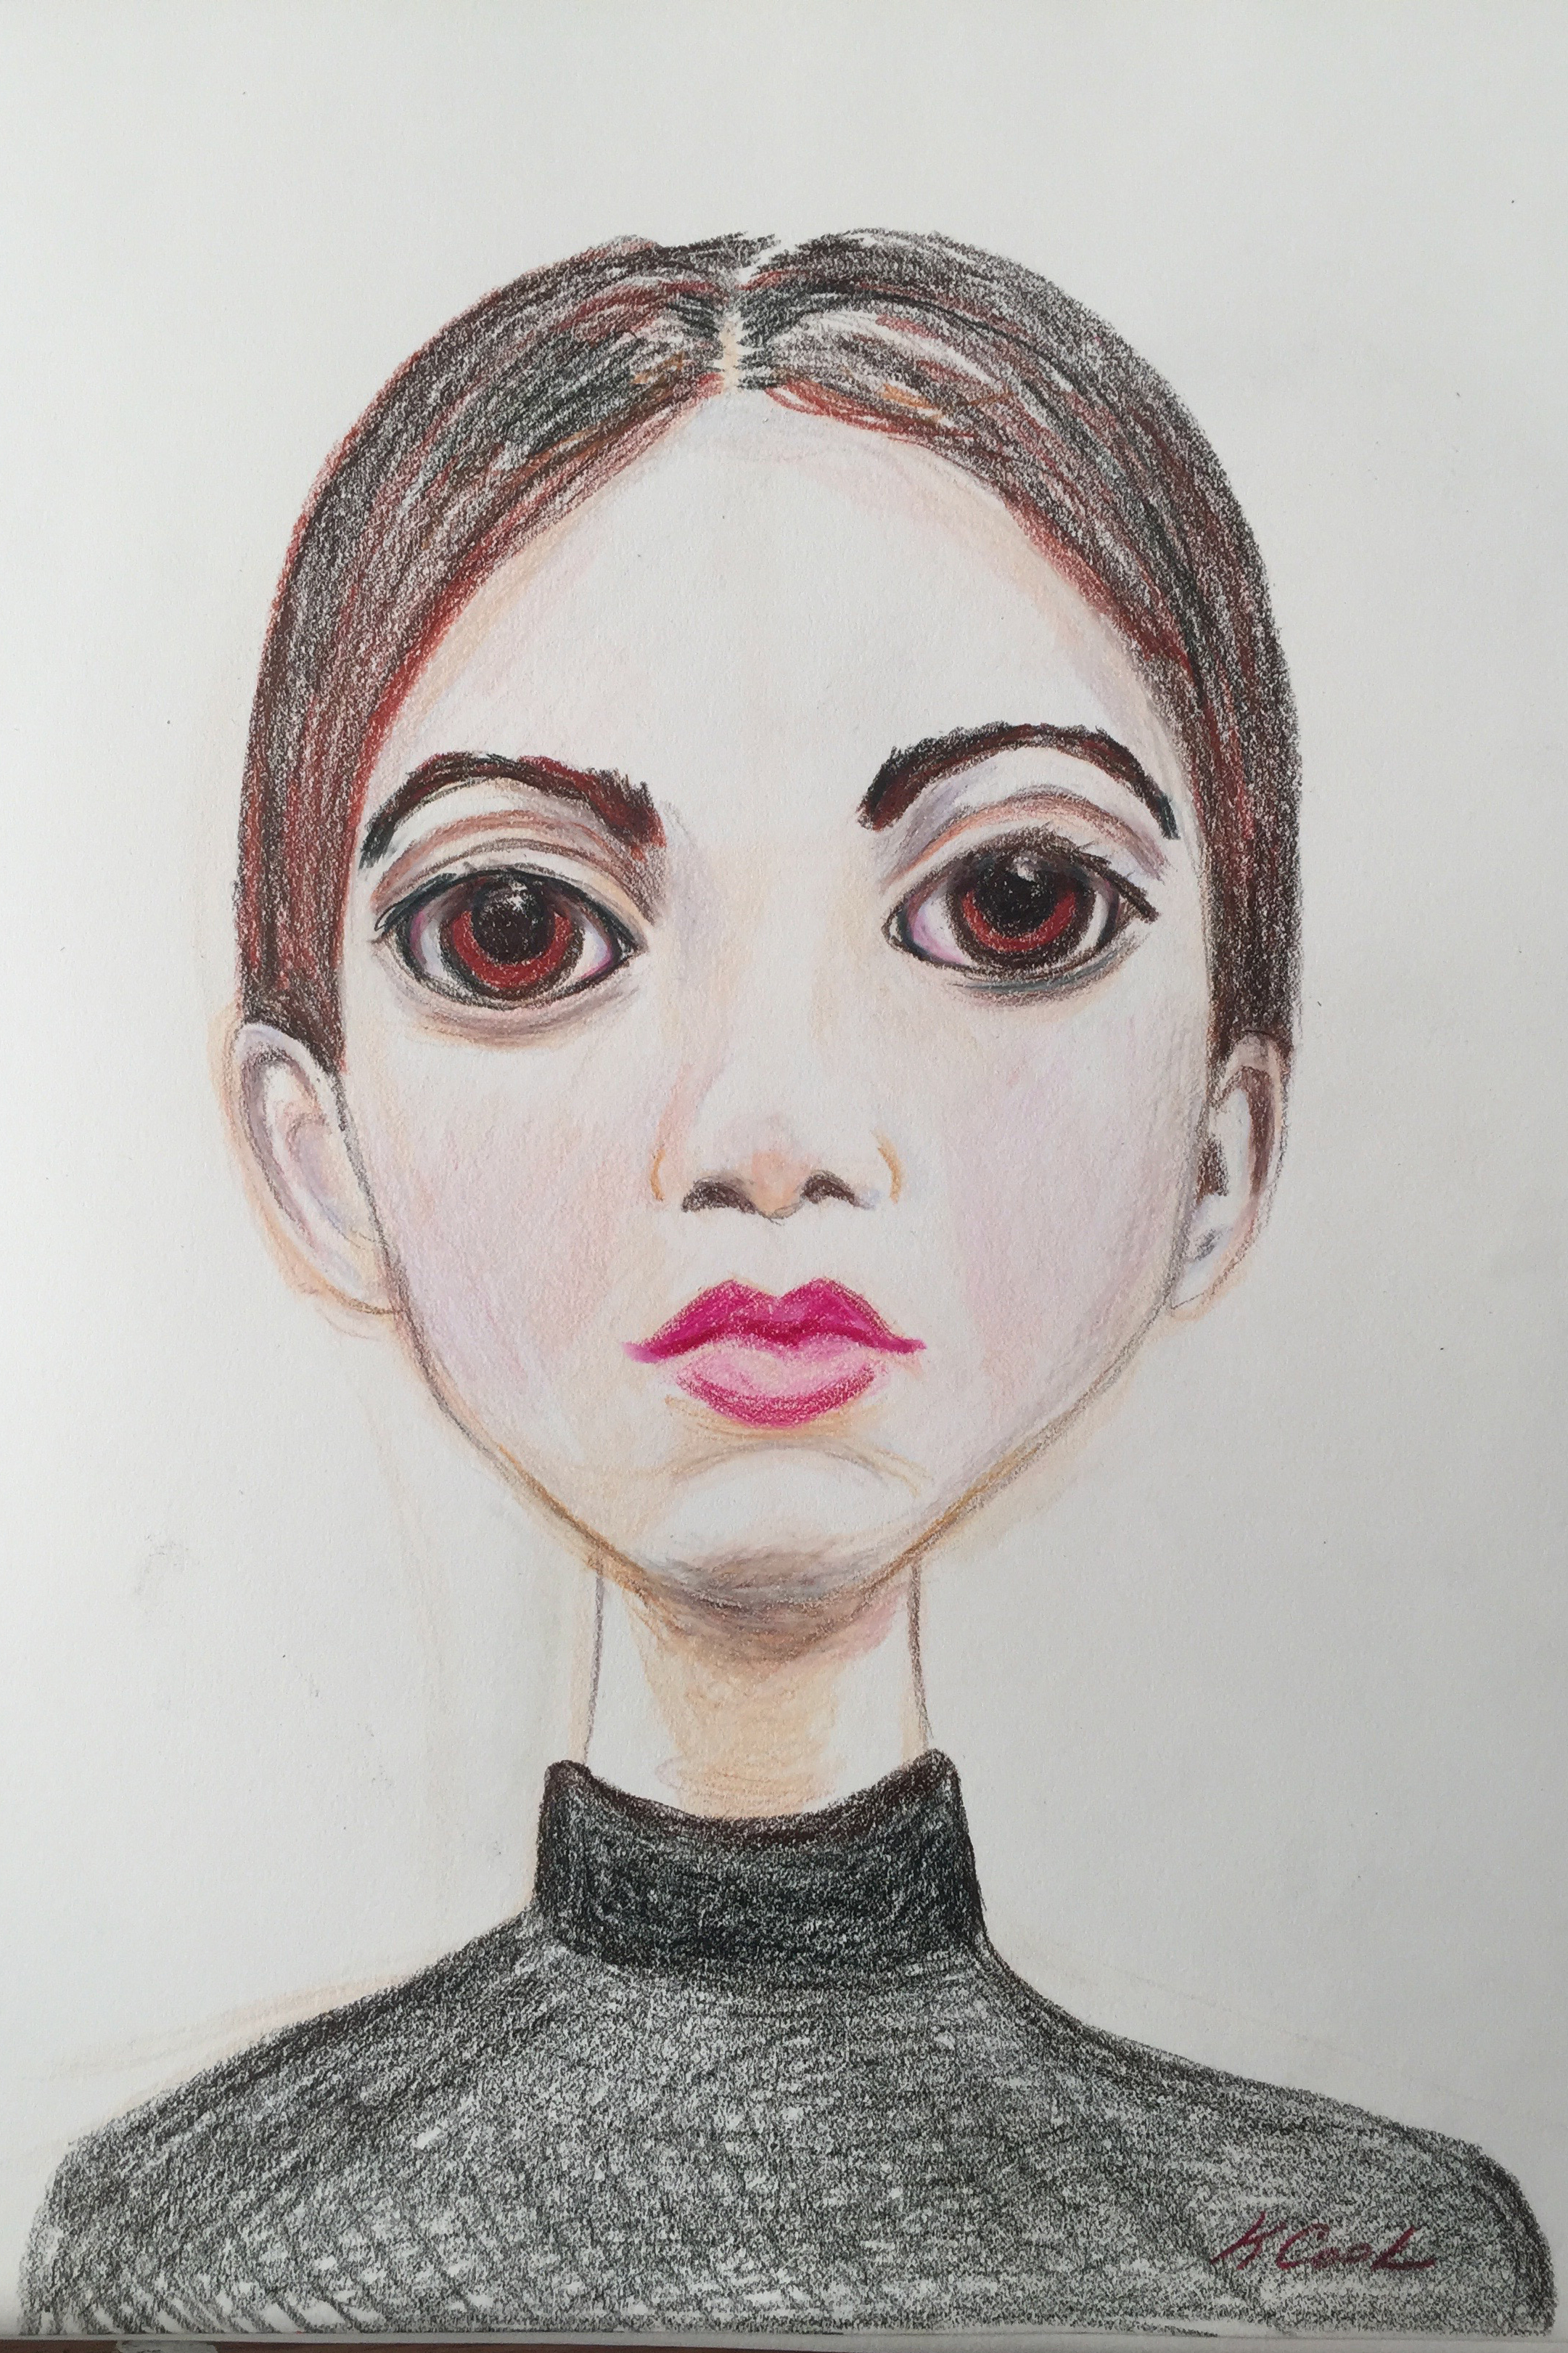 Annika, K Cook, colored pencil drawing 11x14